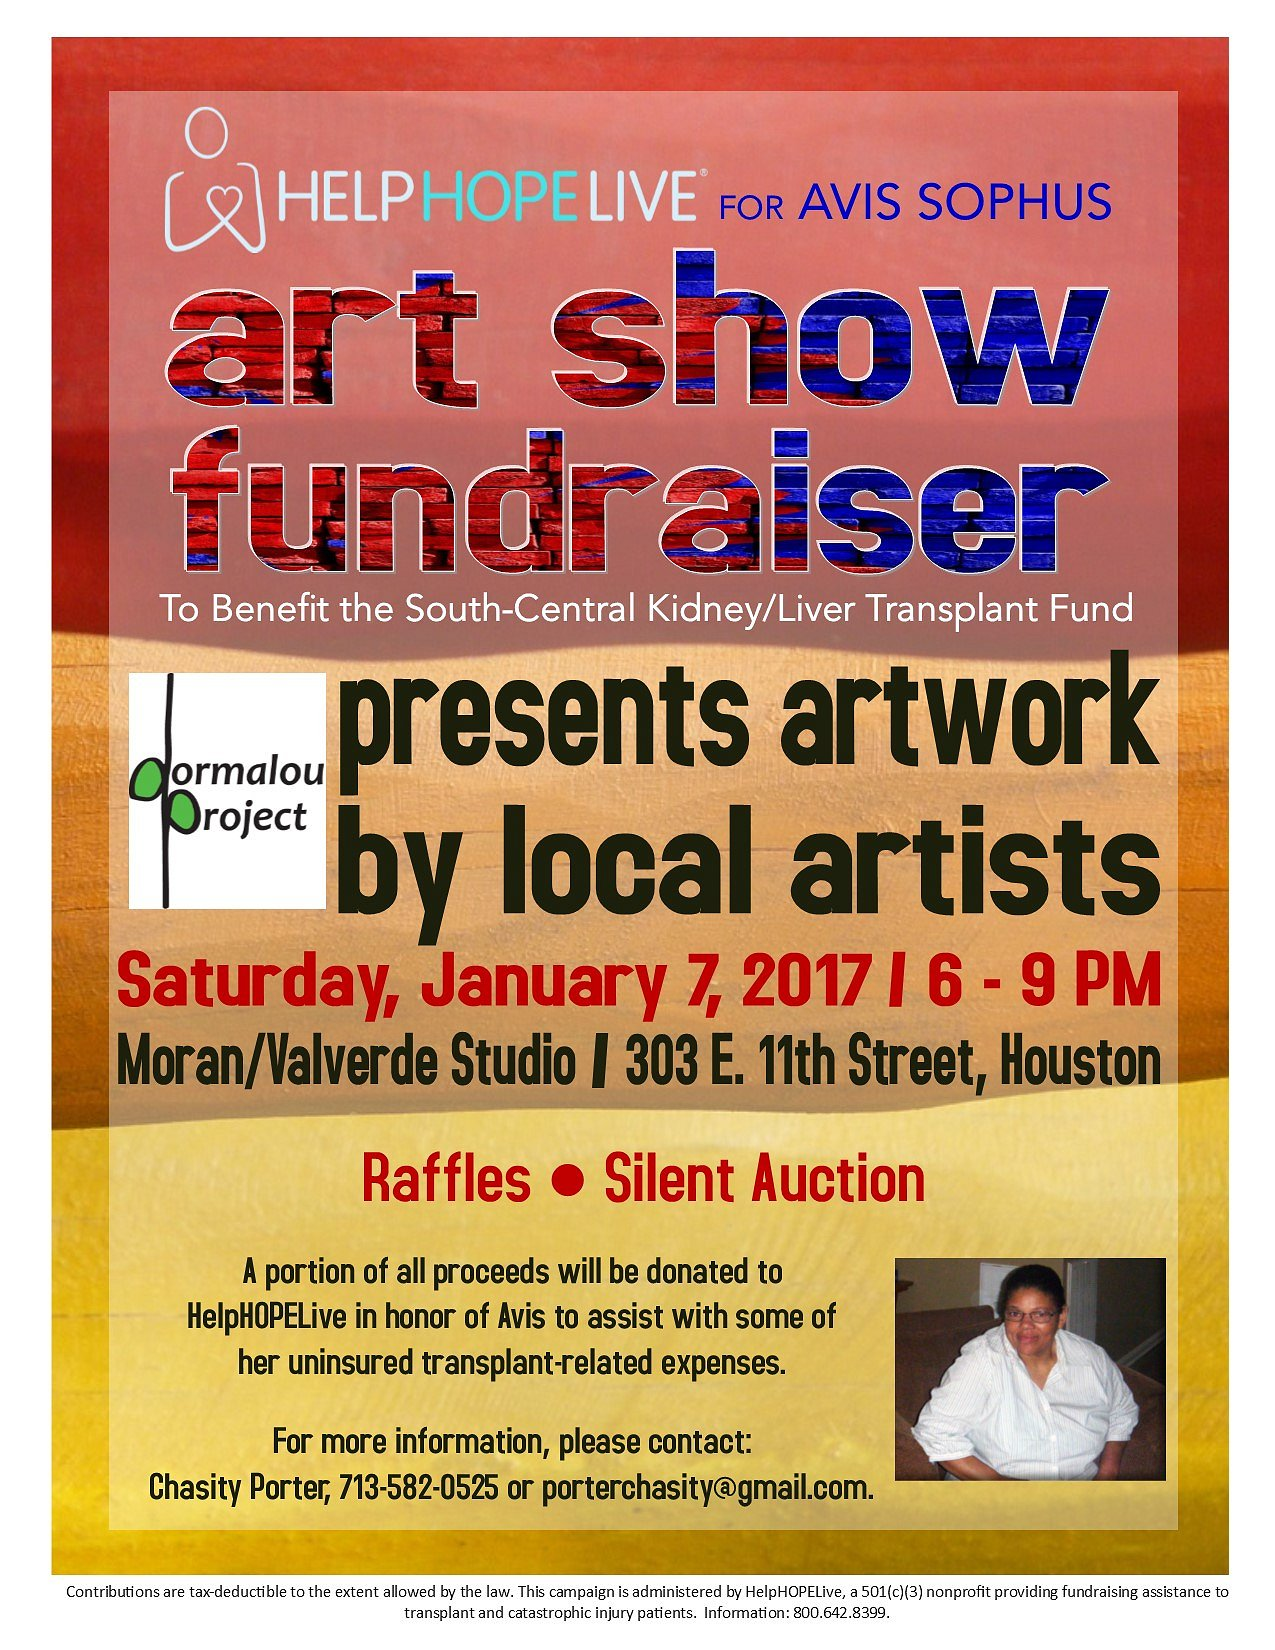 Save Avis: Art Show Fundraiser